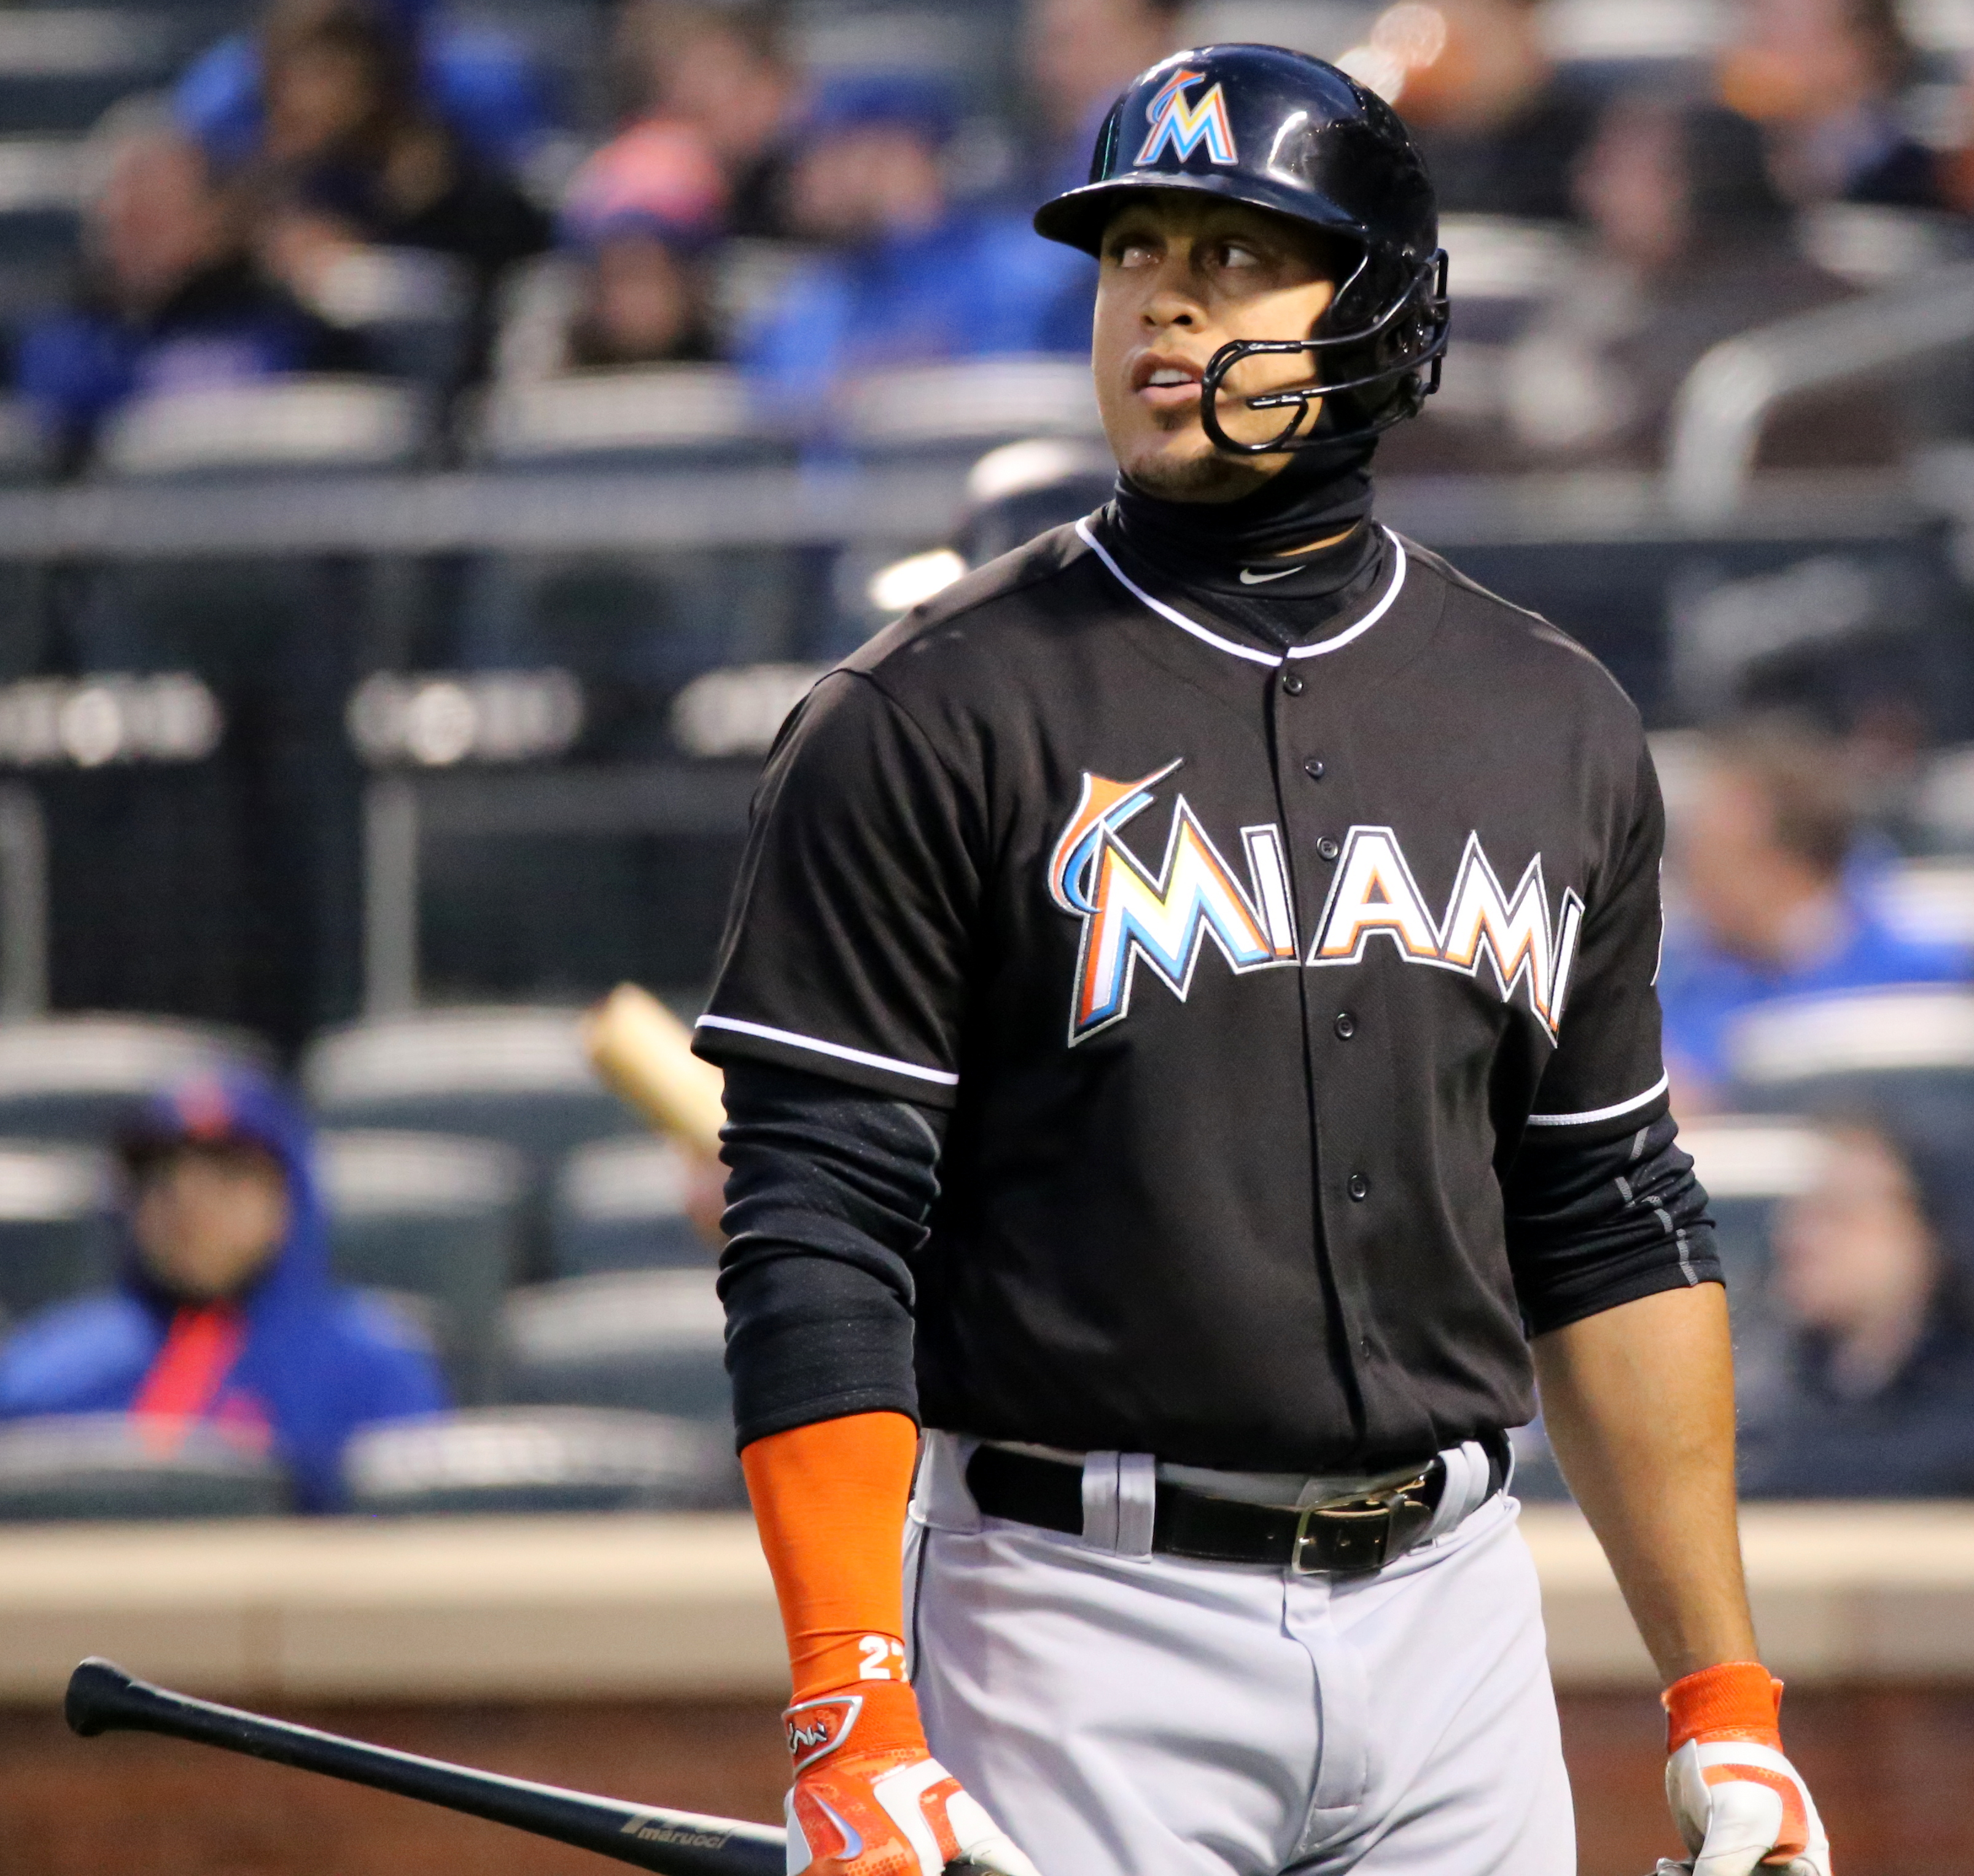 Giancarlo Stanton: File:Giancarlo Stanton On April 12, 2016.jpg